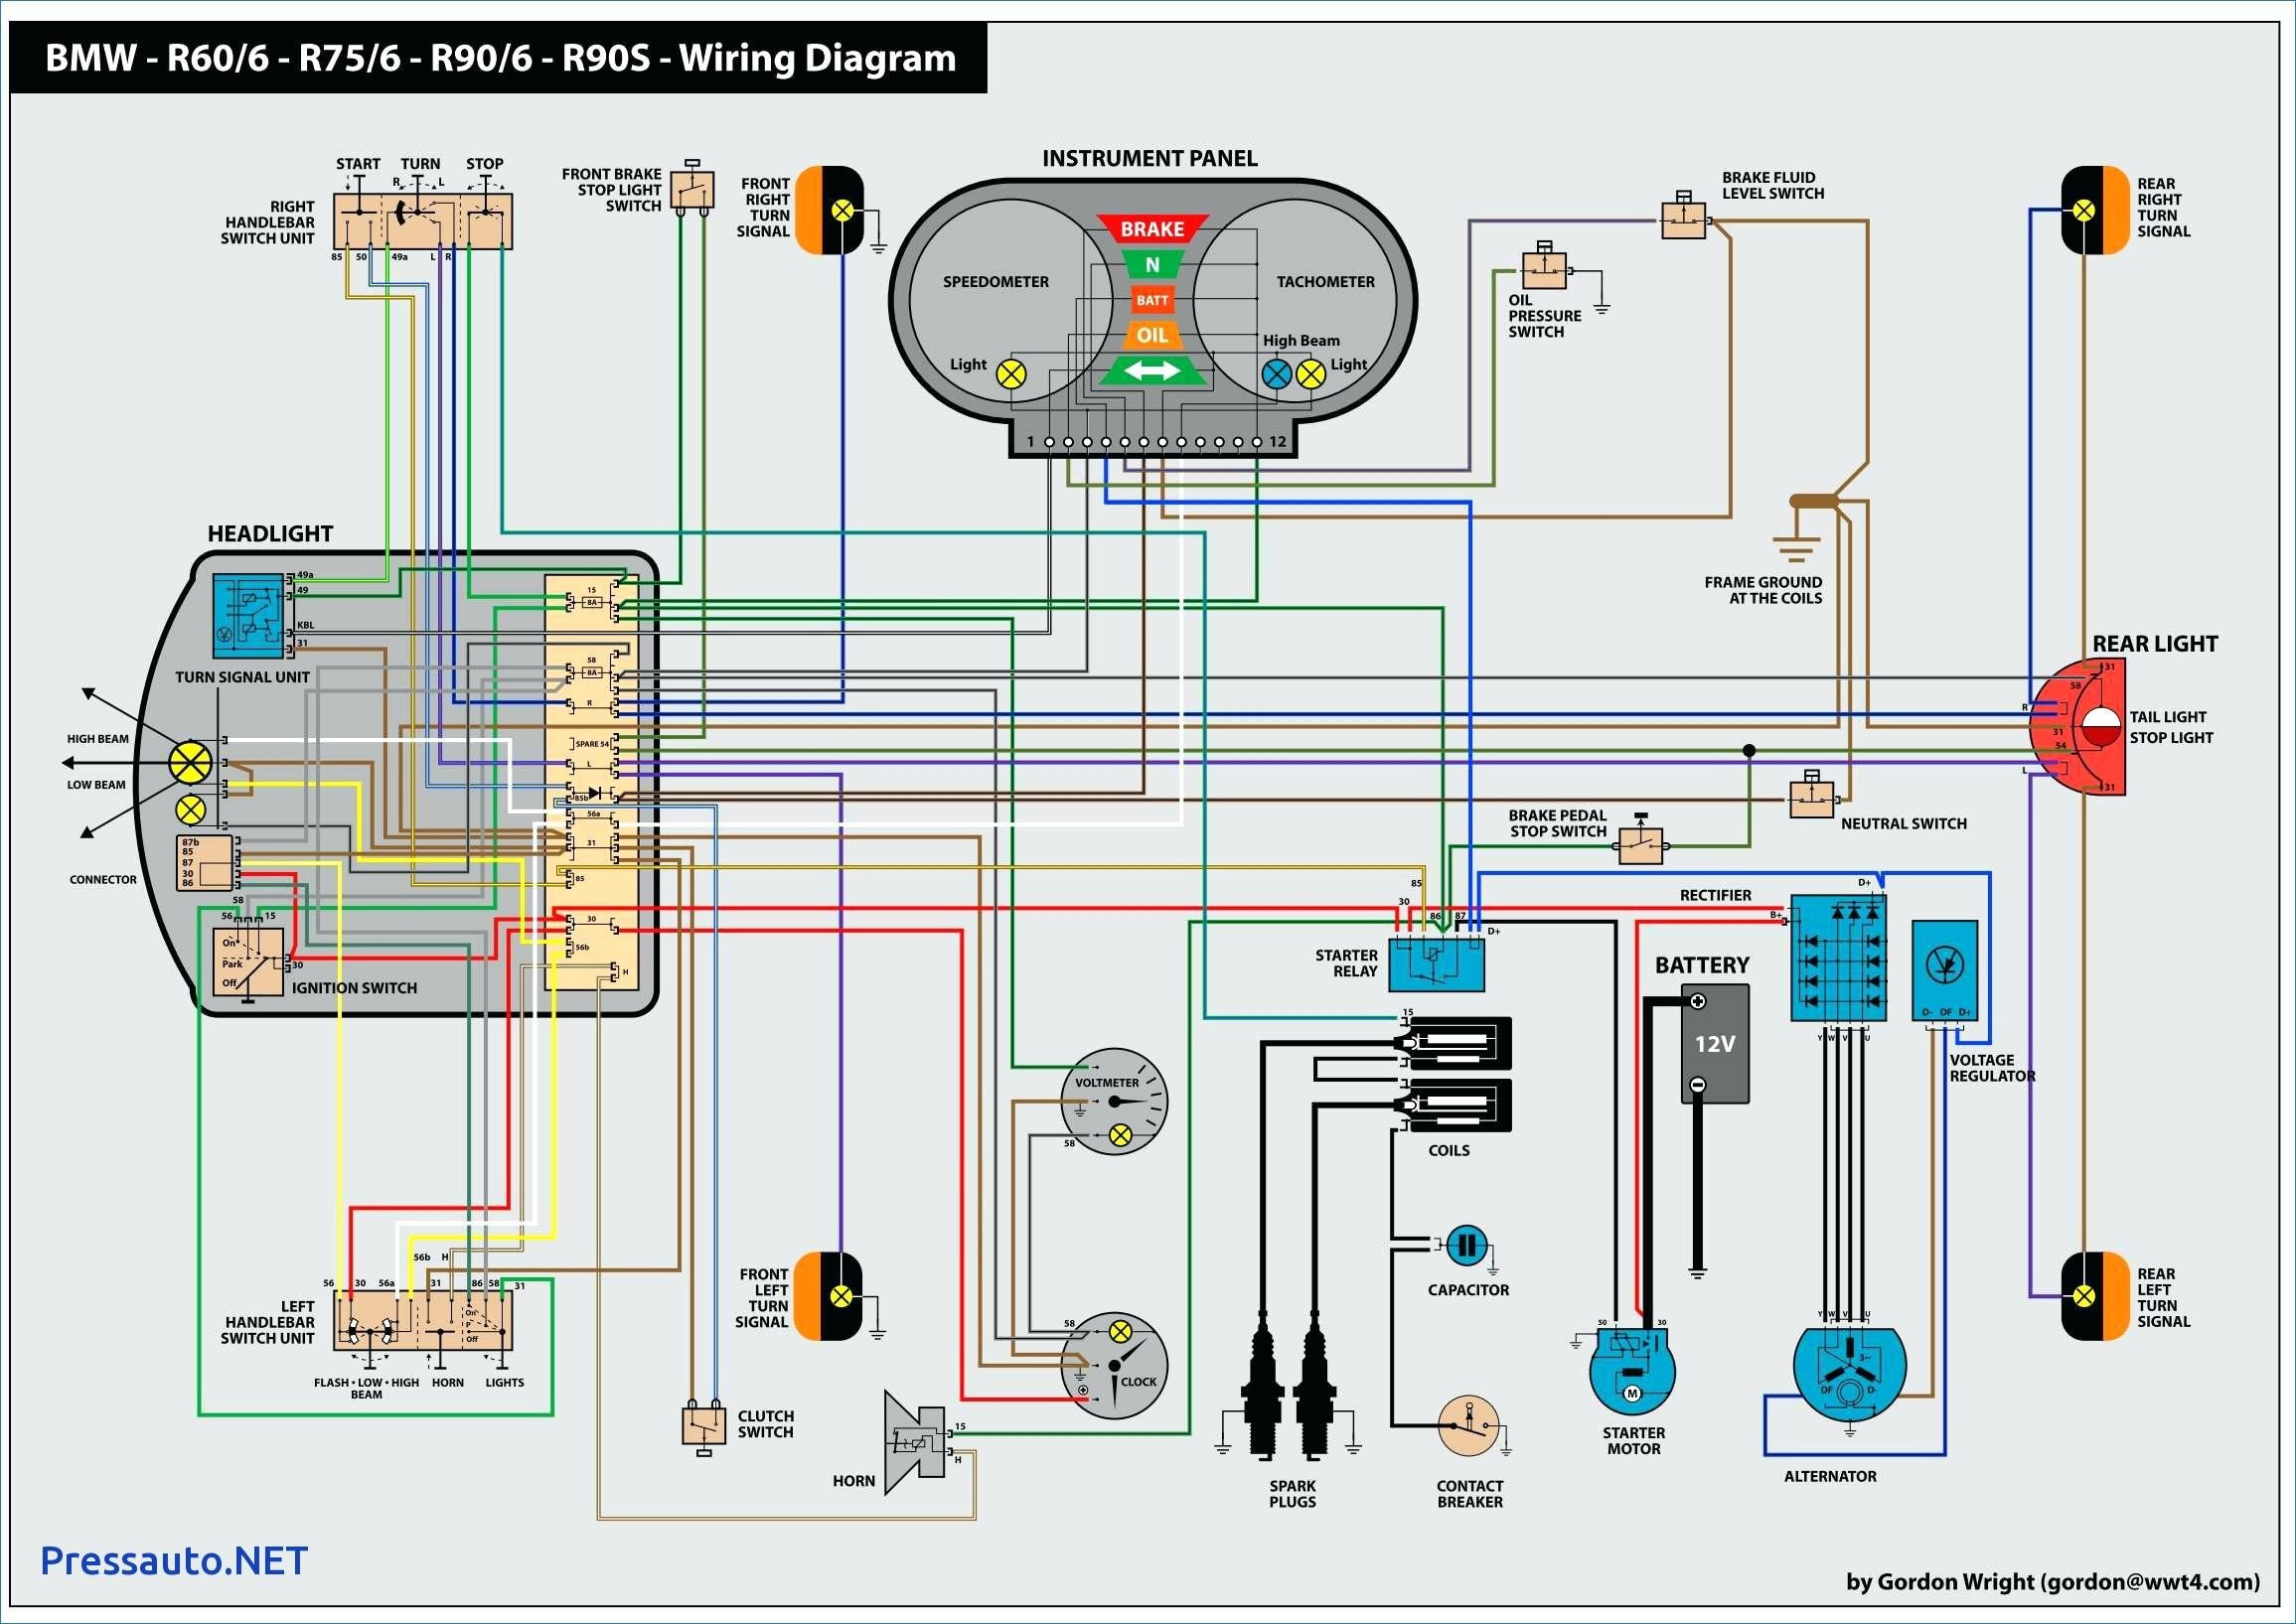 2011 mini cooper wiring diagram | develop-metal wiring diagram union -  develop-metal.buildingblocks2016.eu  buildingblocks2016.eu